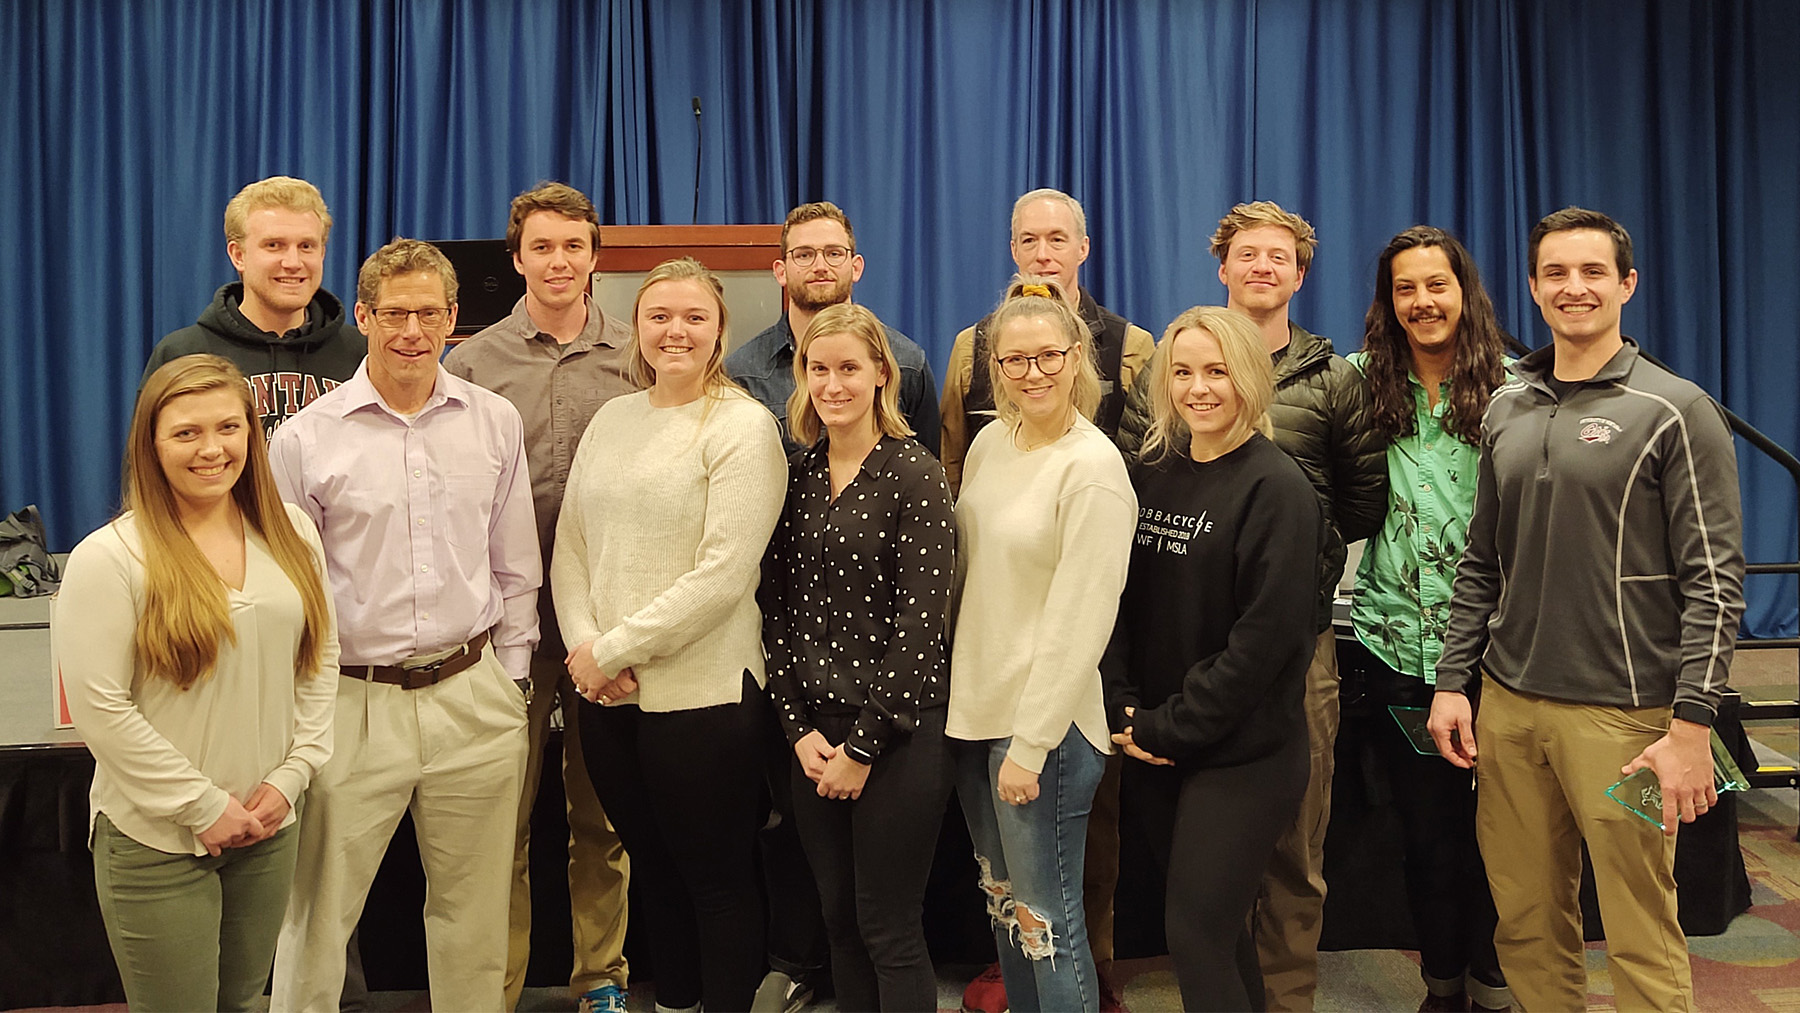 Group photo of Dr. John Quindry and students